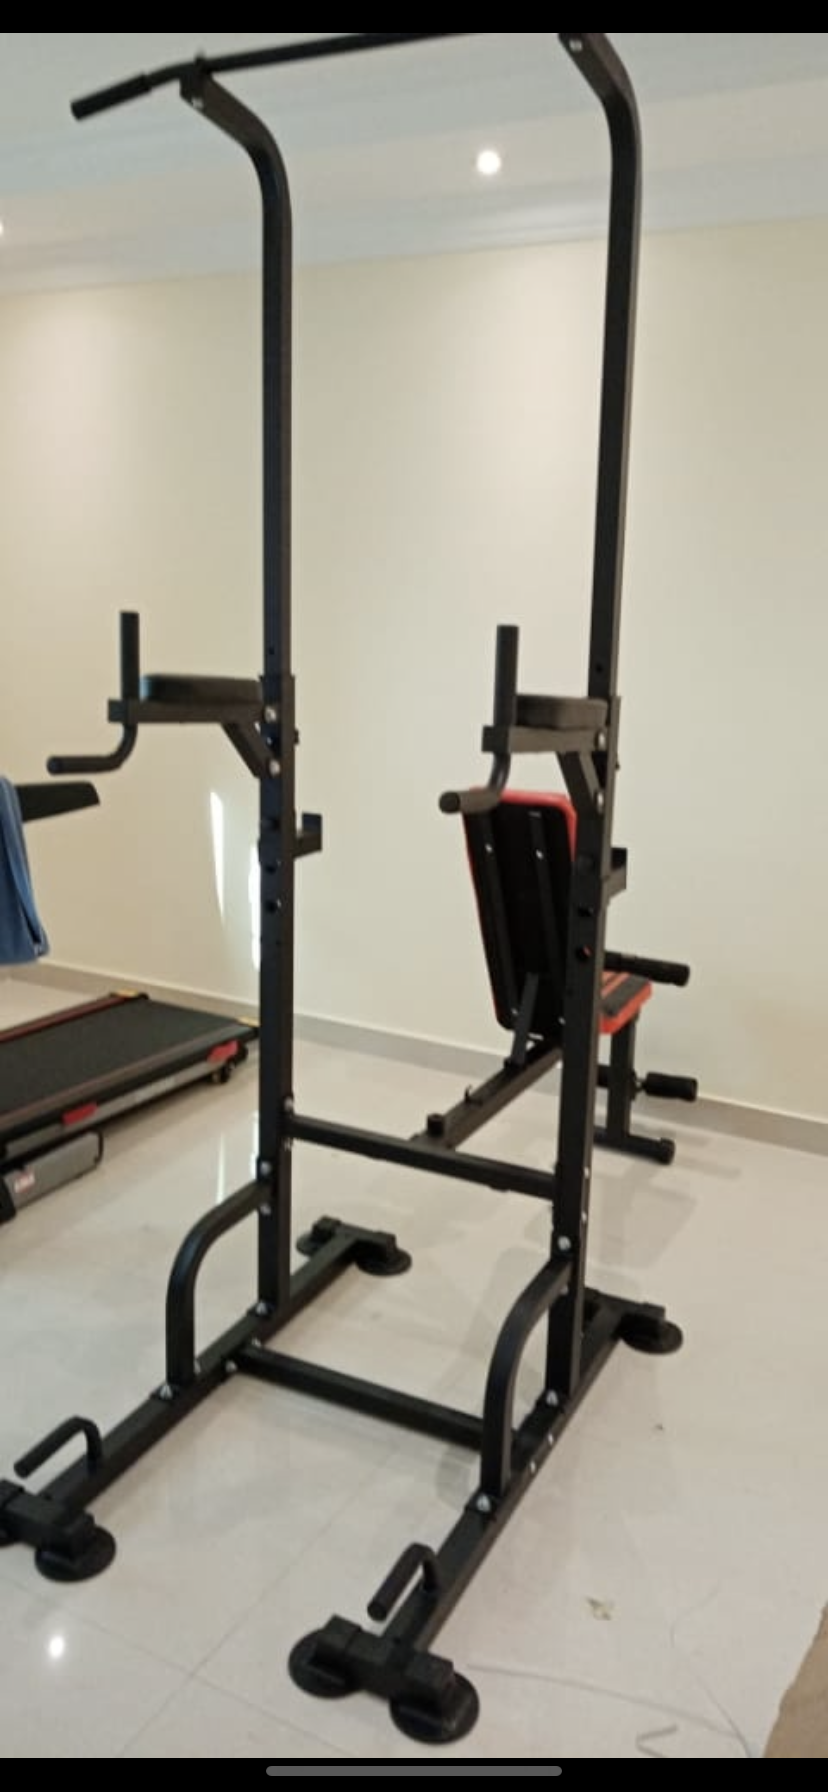 Adjustable dumbbell with pullup and dips